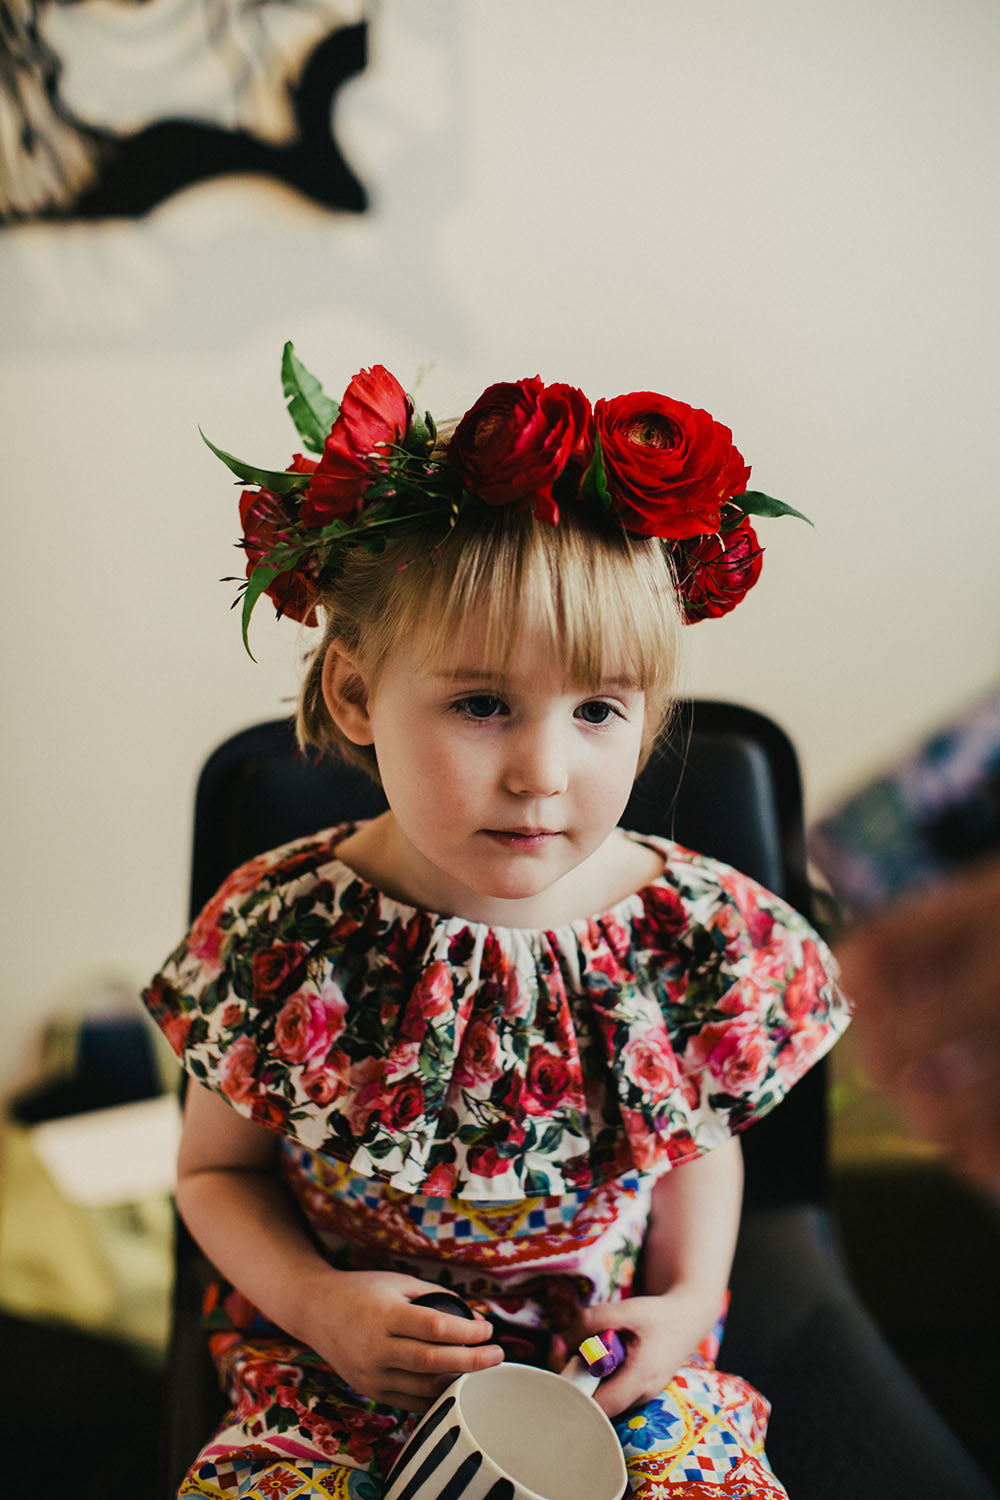 Young girl with red flower crown